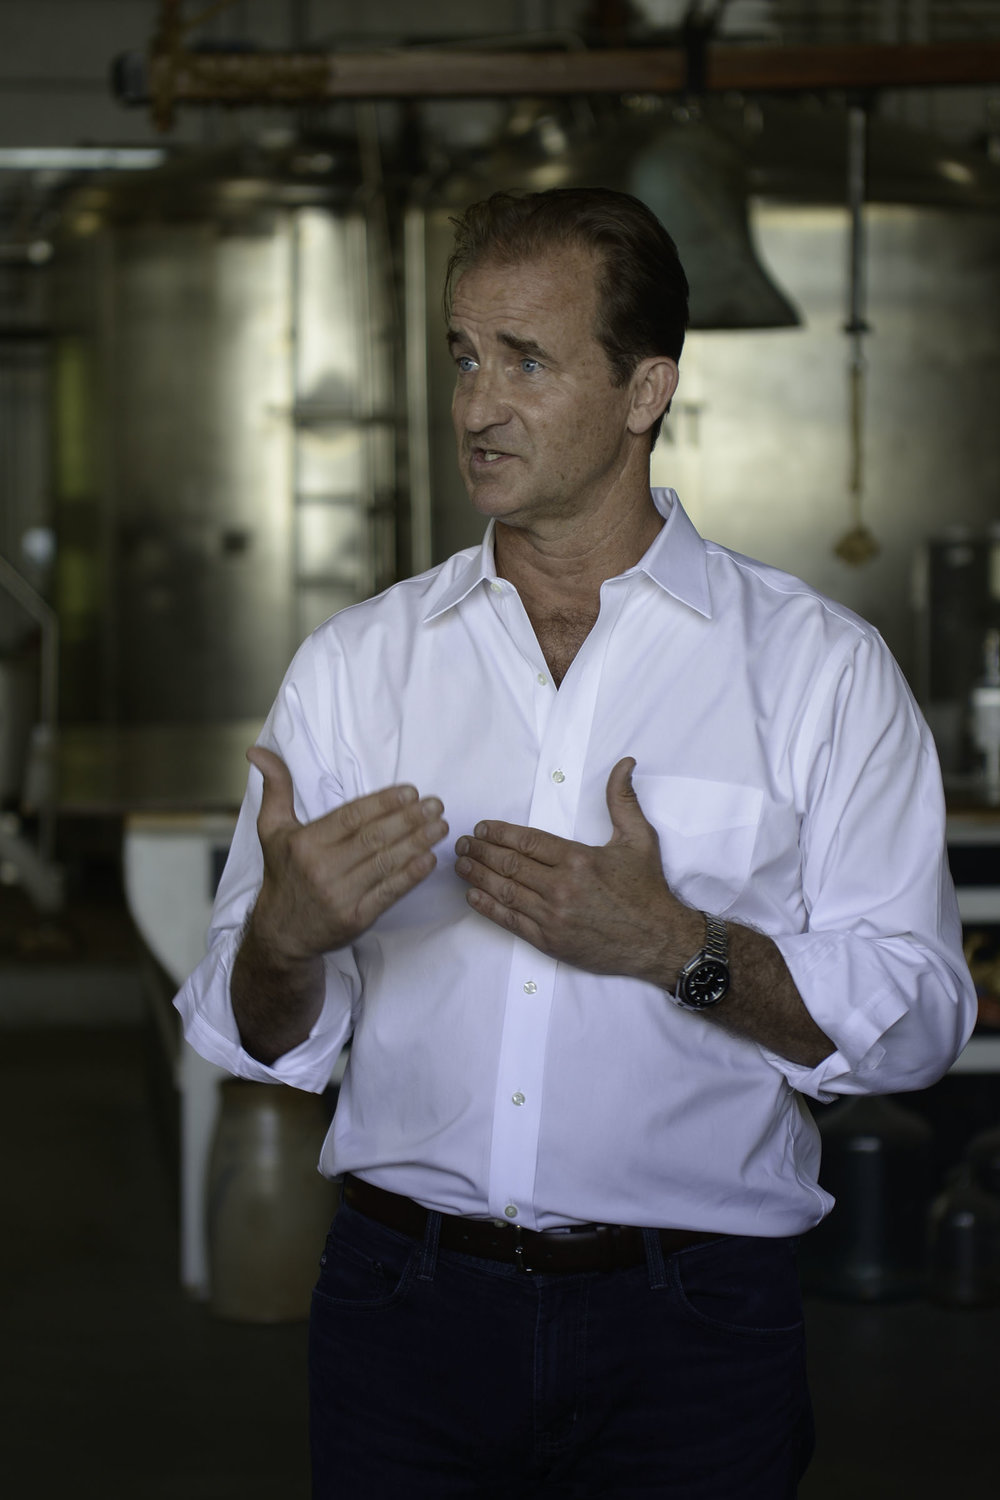 Meet Andrew Cabot - A natural born story teller, dreamer, and deep thinker, Andrew Cabot is the founder and CEO of the Privateer Rum Distillery. With vision and strategy, Andrew has conquered the craft spirits world and is responsible for the production of some of the world's finest rum.